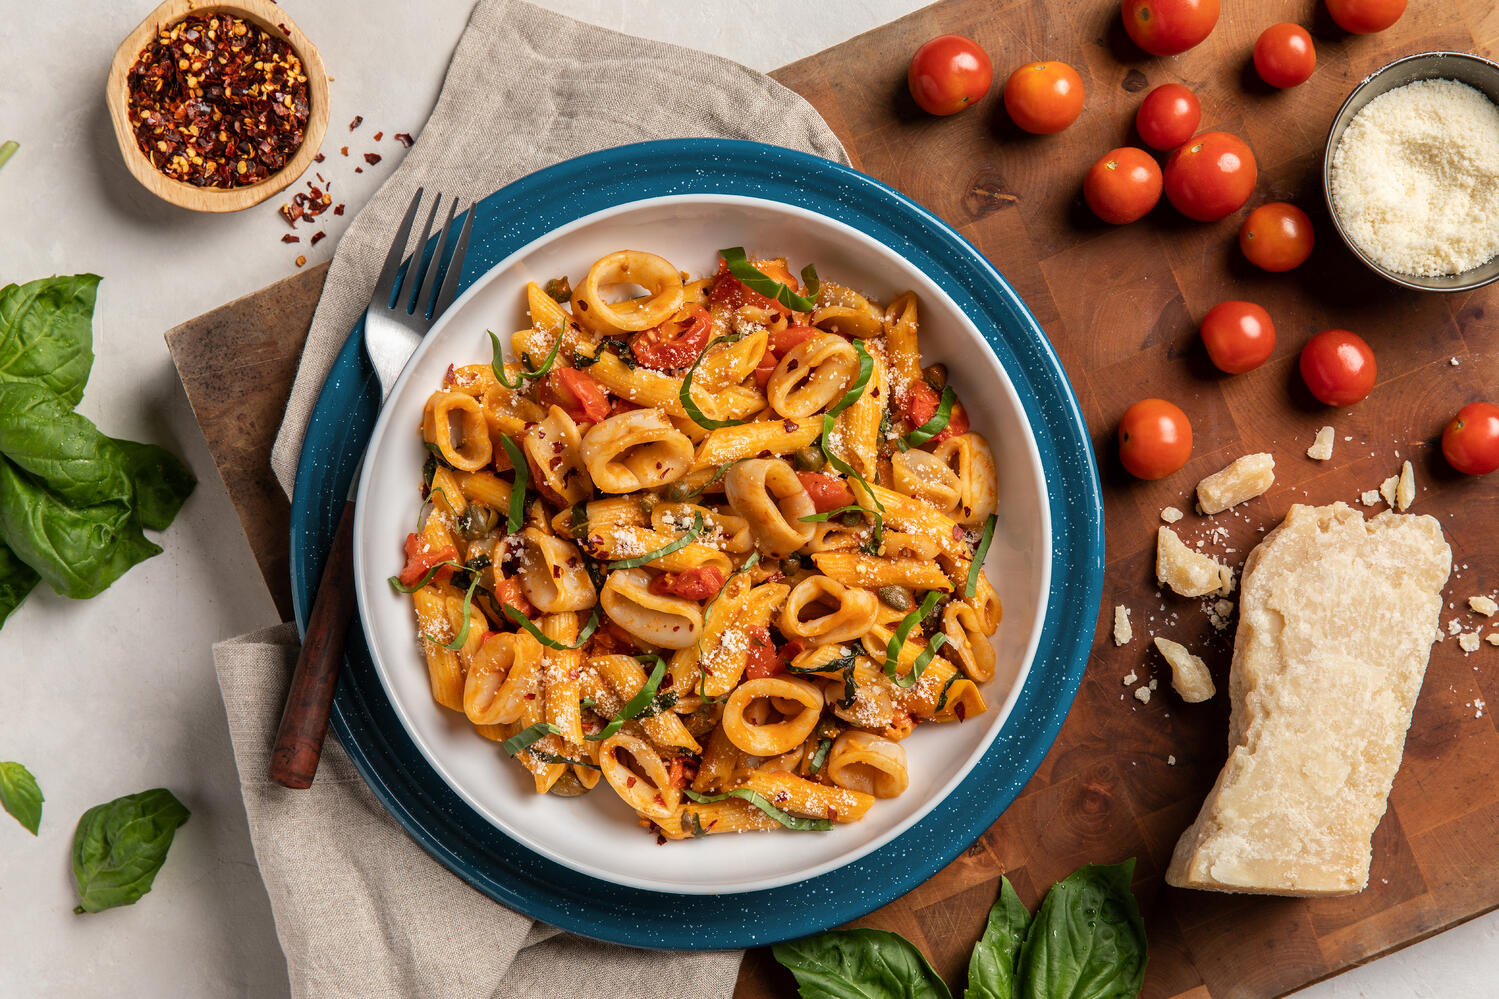 Recipe: Penne with Calamari and Cherry Tomatoes